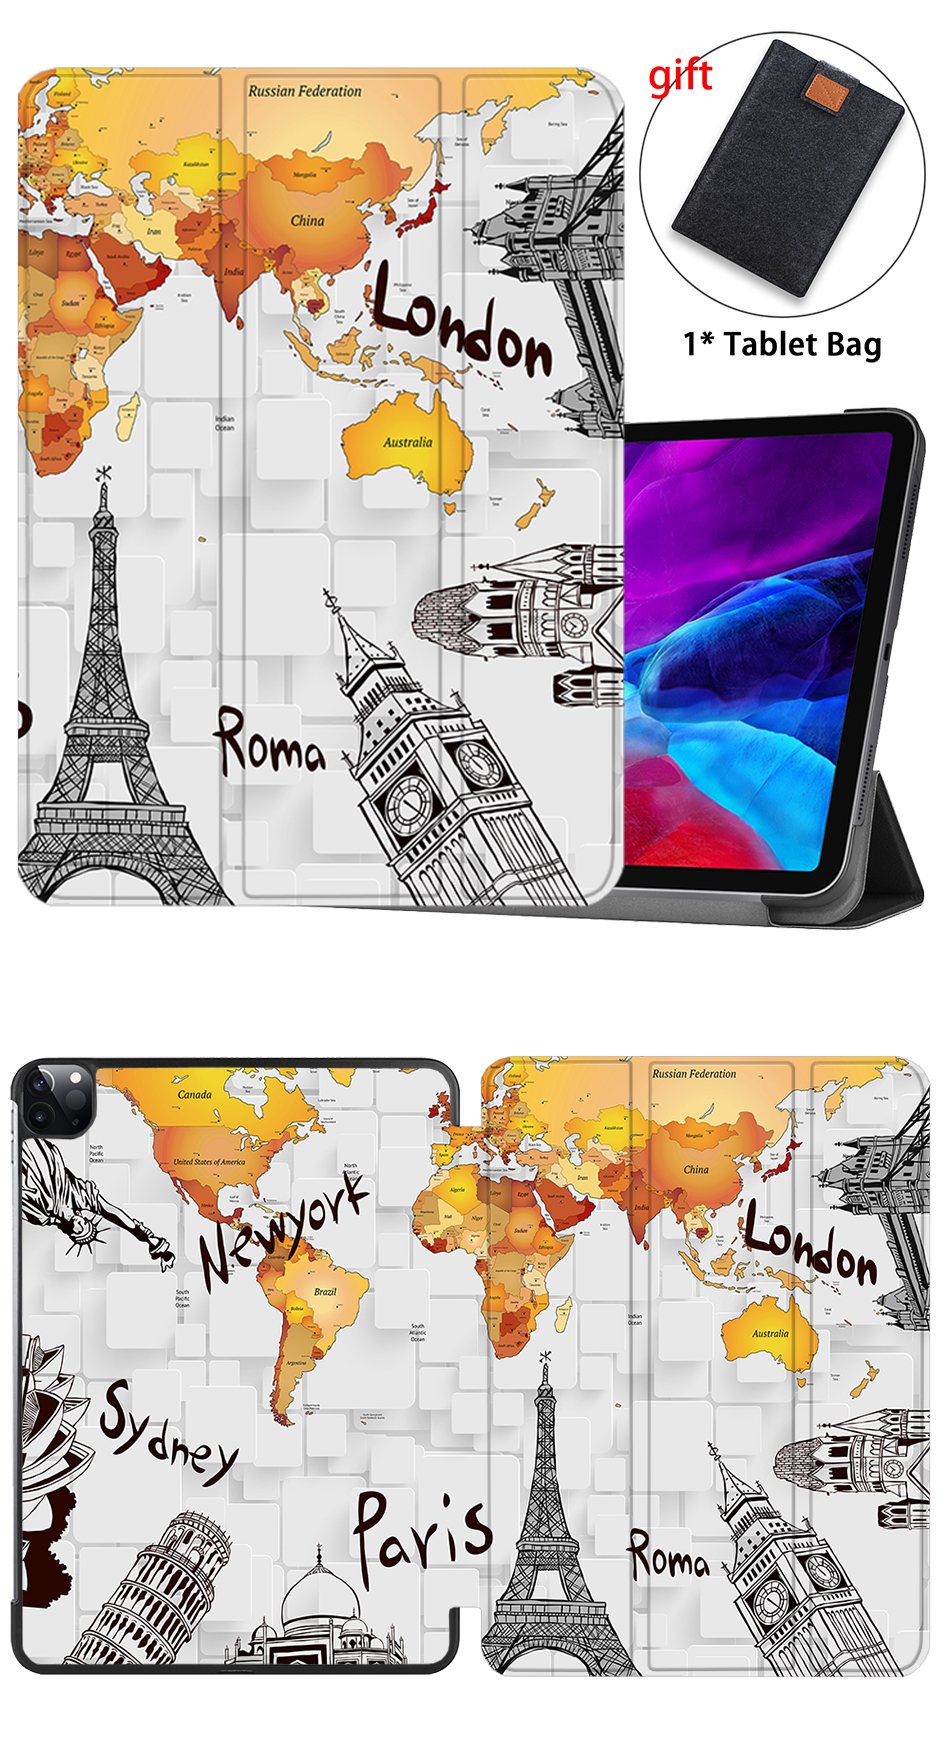 PU Stand Pro MTT Smart A2233 2020 Flip Leather For Magnetic A2229 iPad Case inch 12.9